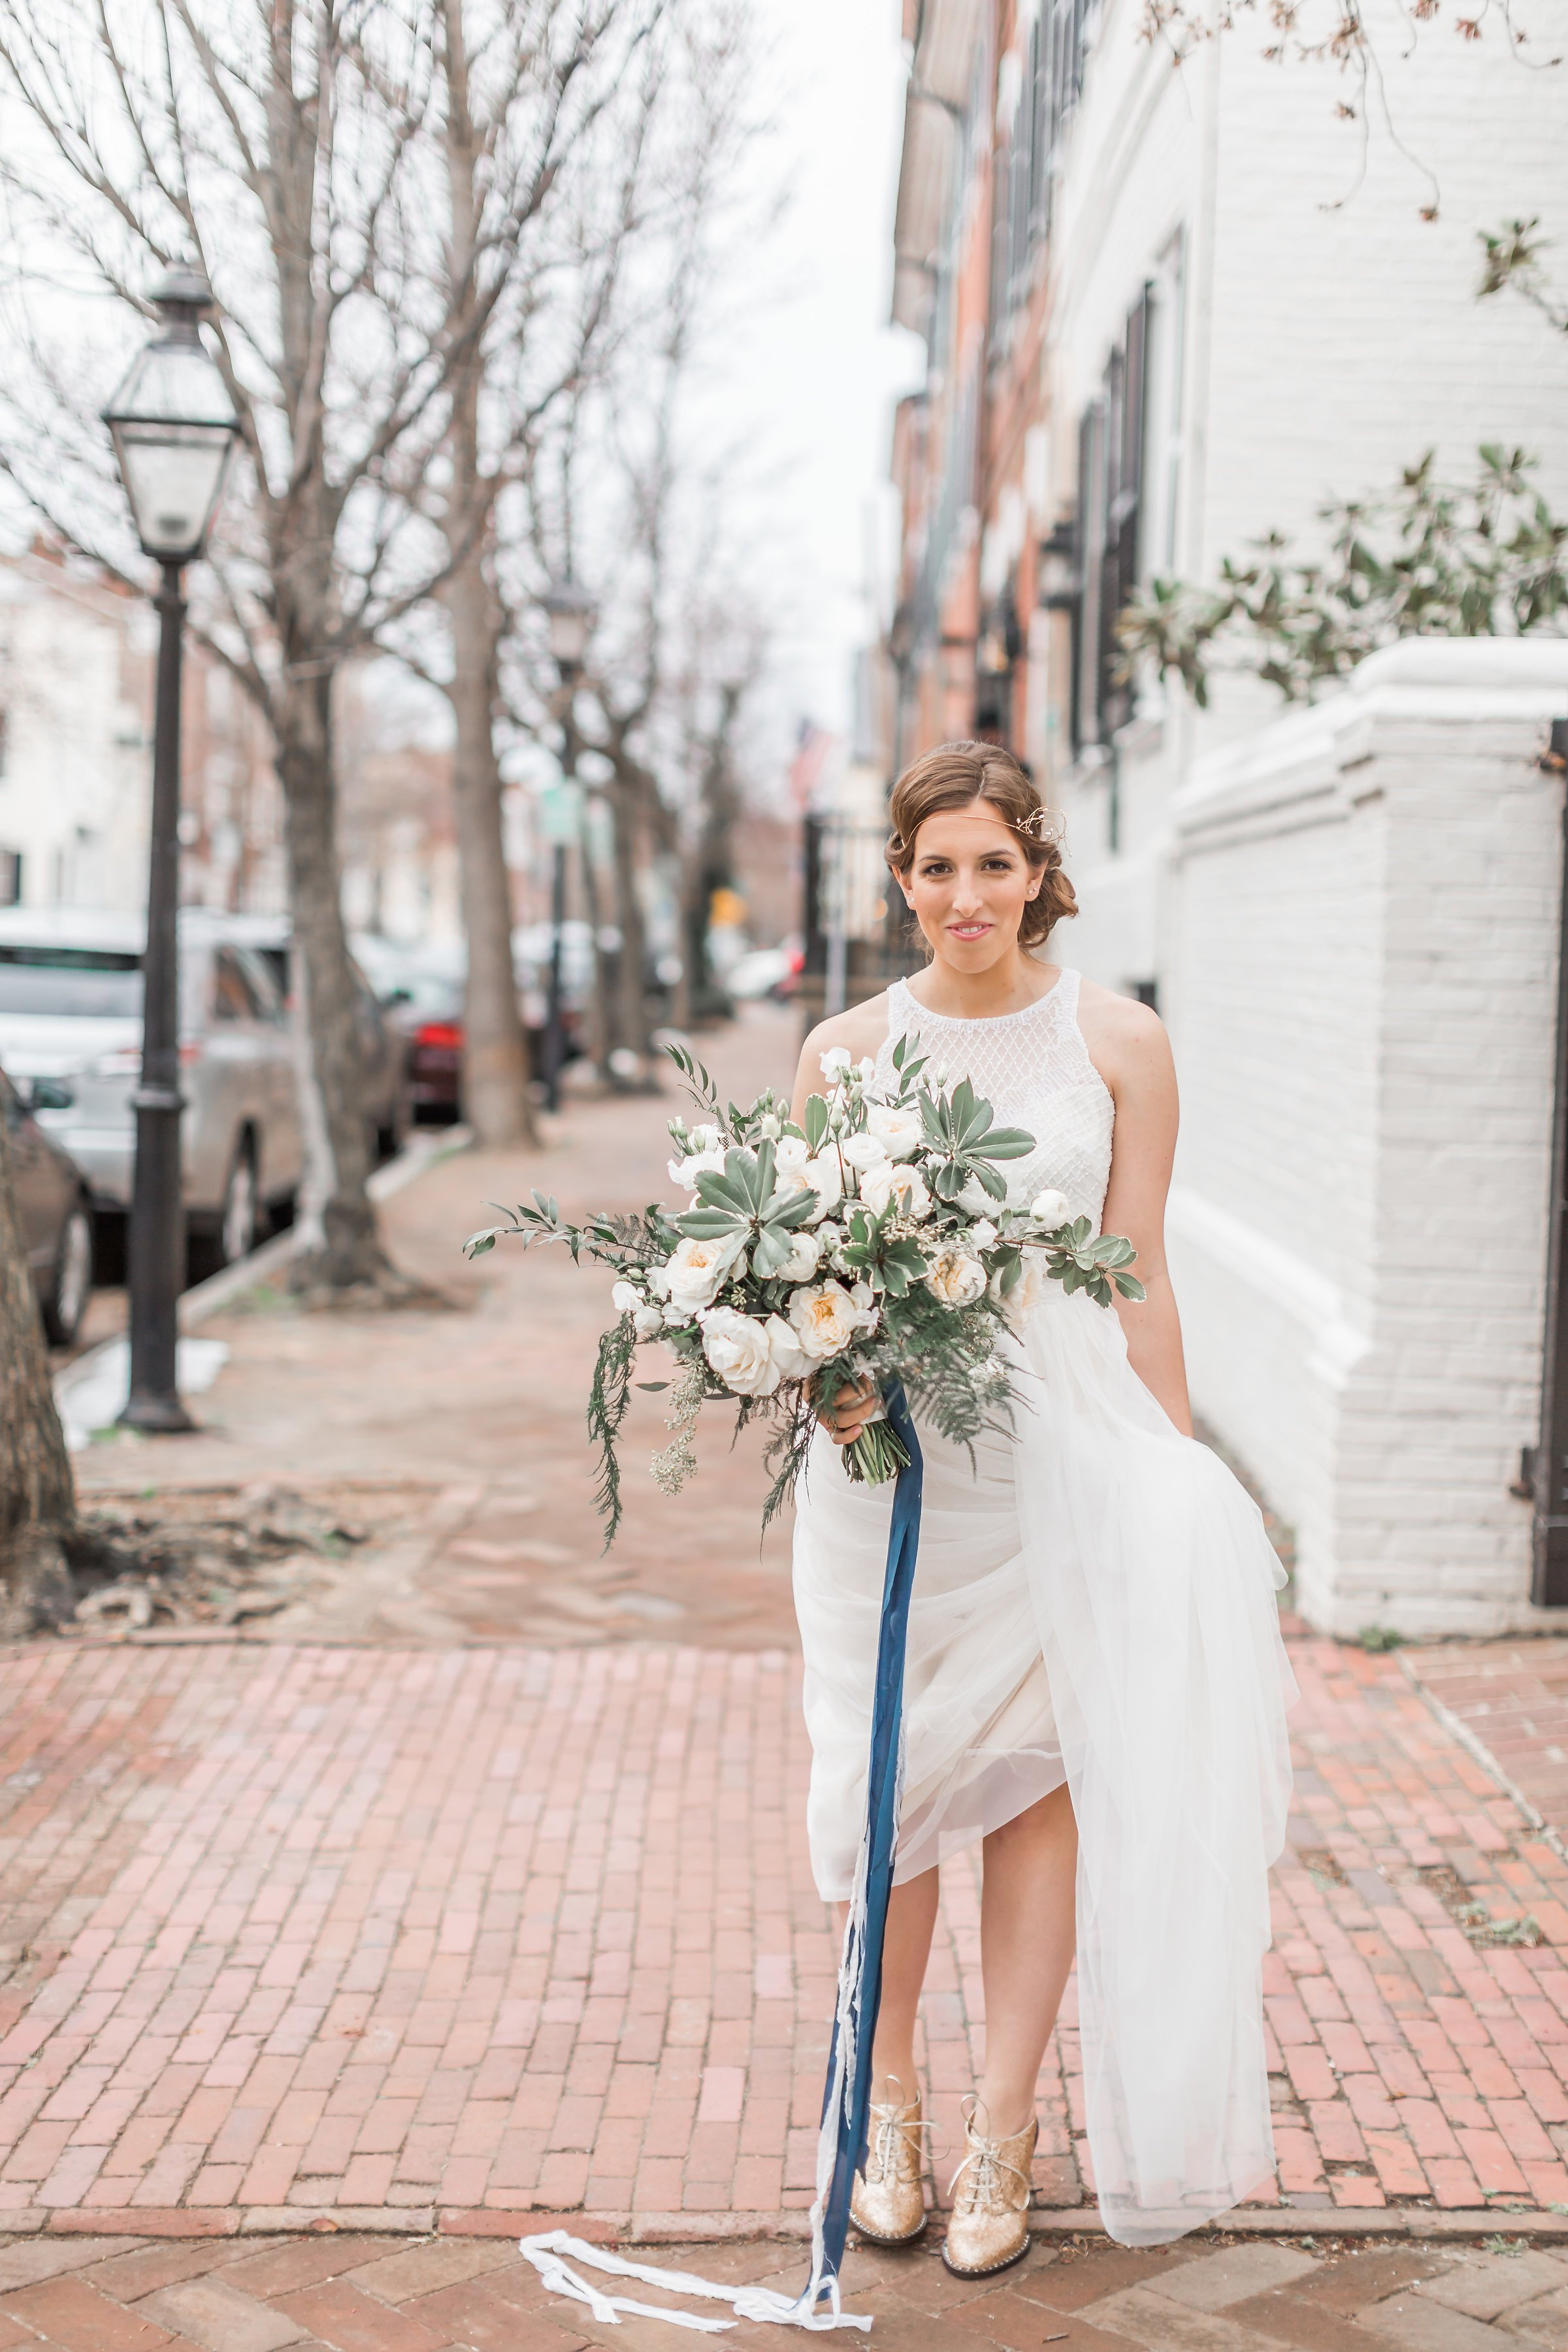 Engaged in December, Married in March: Melissa and Bogdan's Late Winter Wedding in Old Town Alexandria images 8